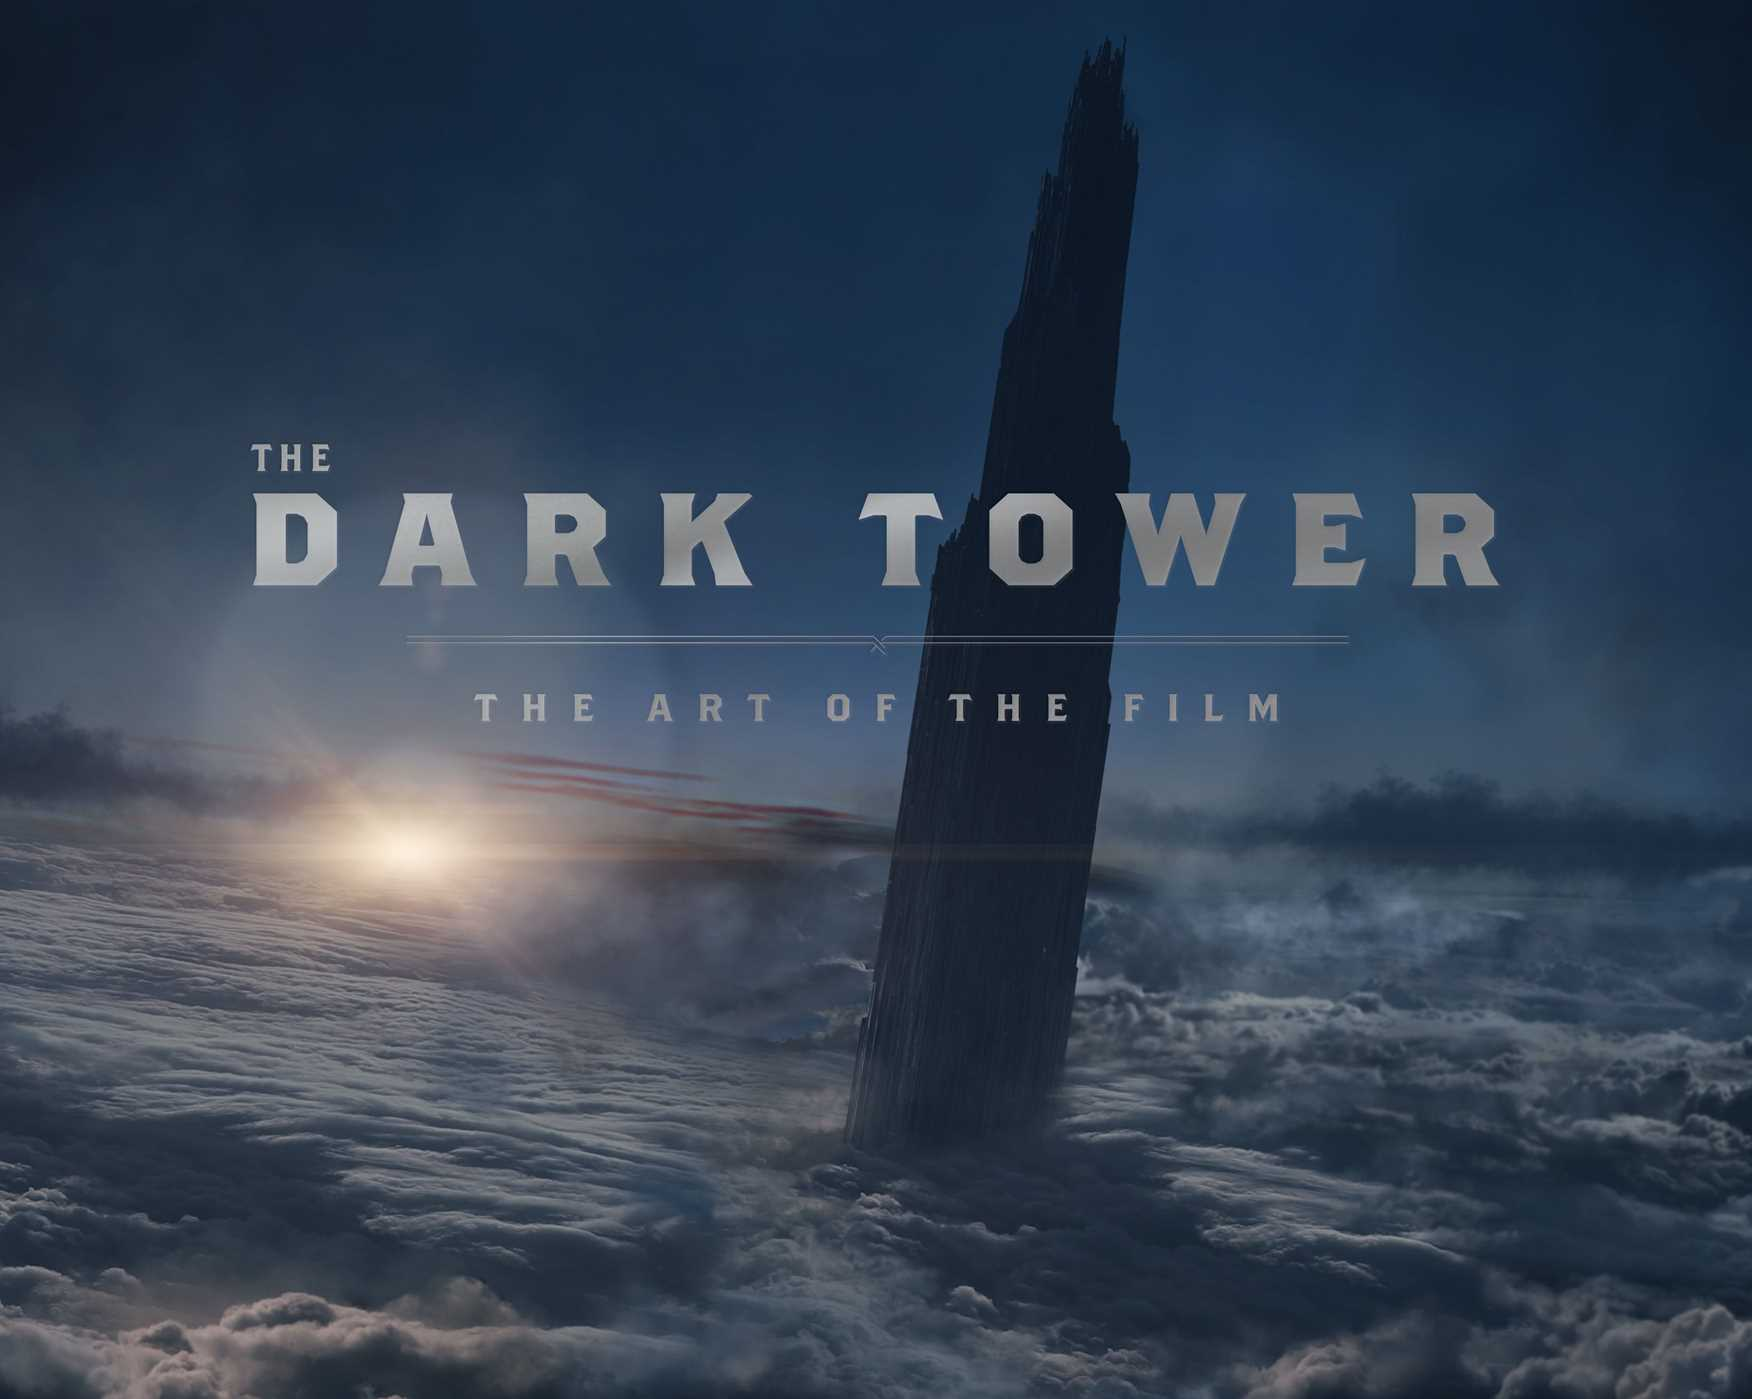 The dark tower the art of the film 9781501164453 hr